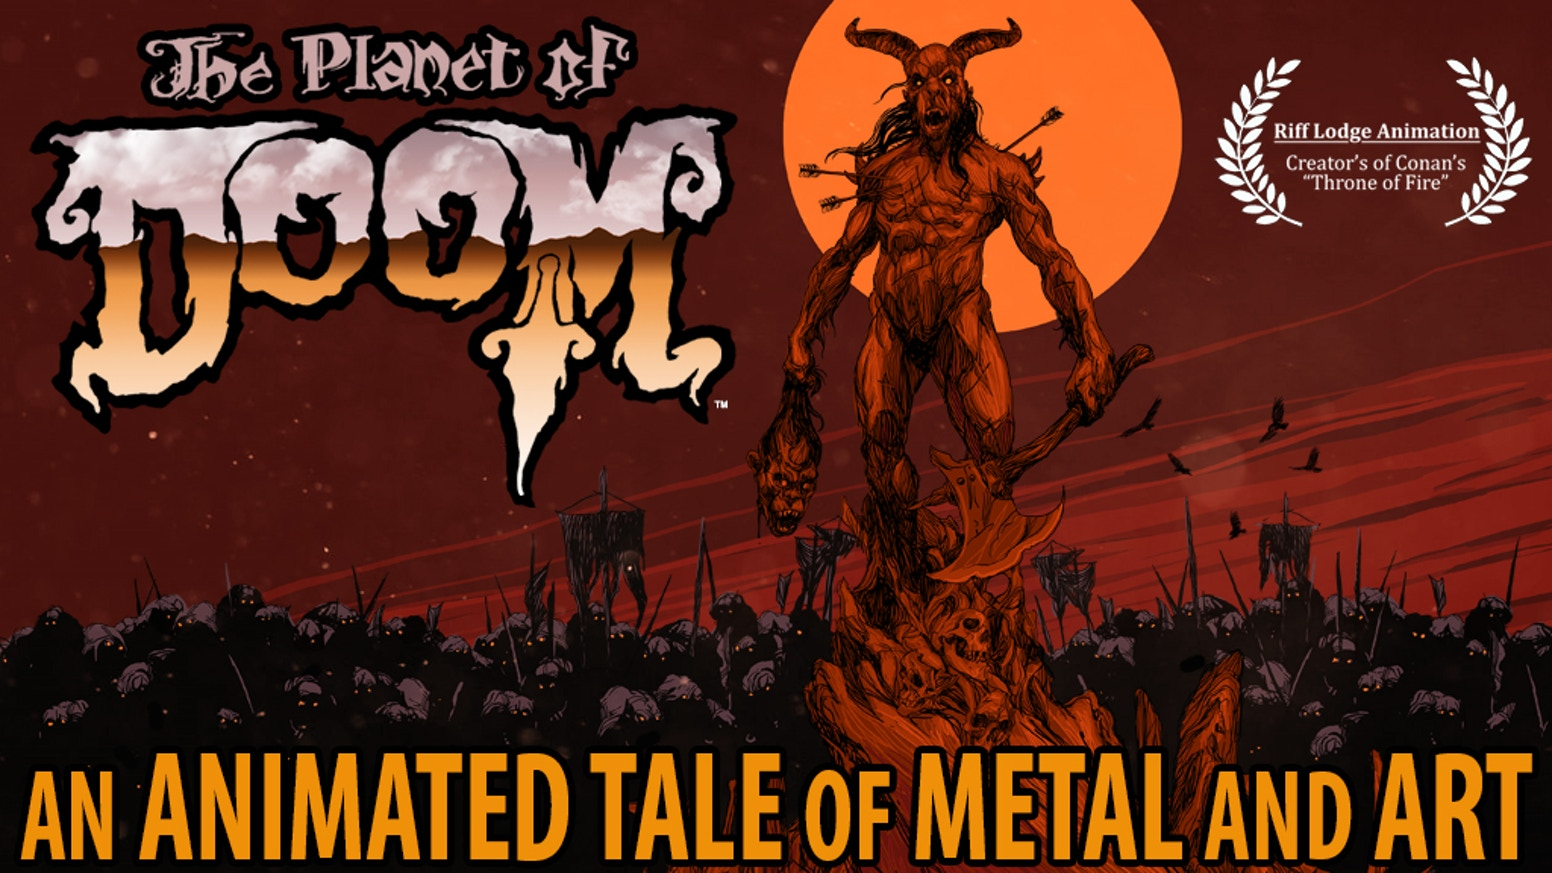 THE PLANET OF DOOM - An Animated Tale of Metal and Art by